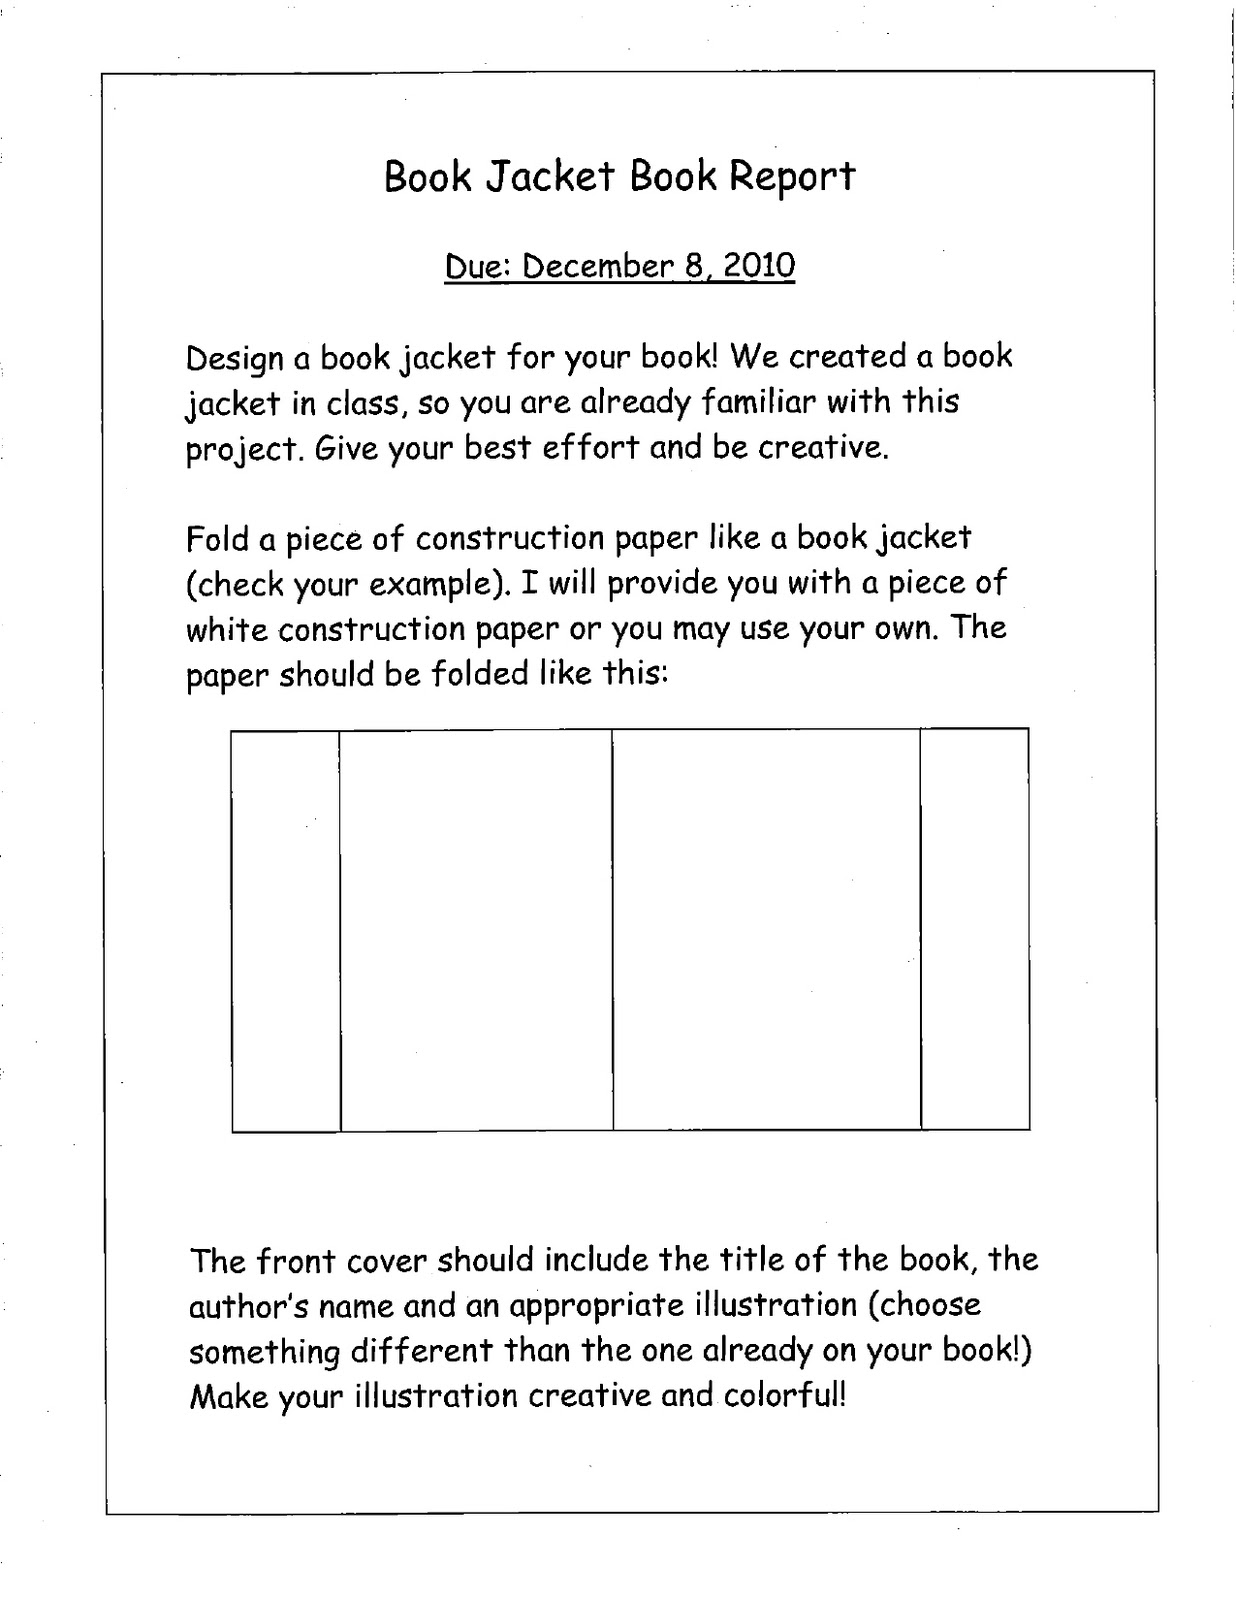 How To Make A Book Jacket Book Report ~ Raft what should i do